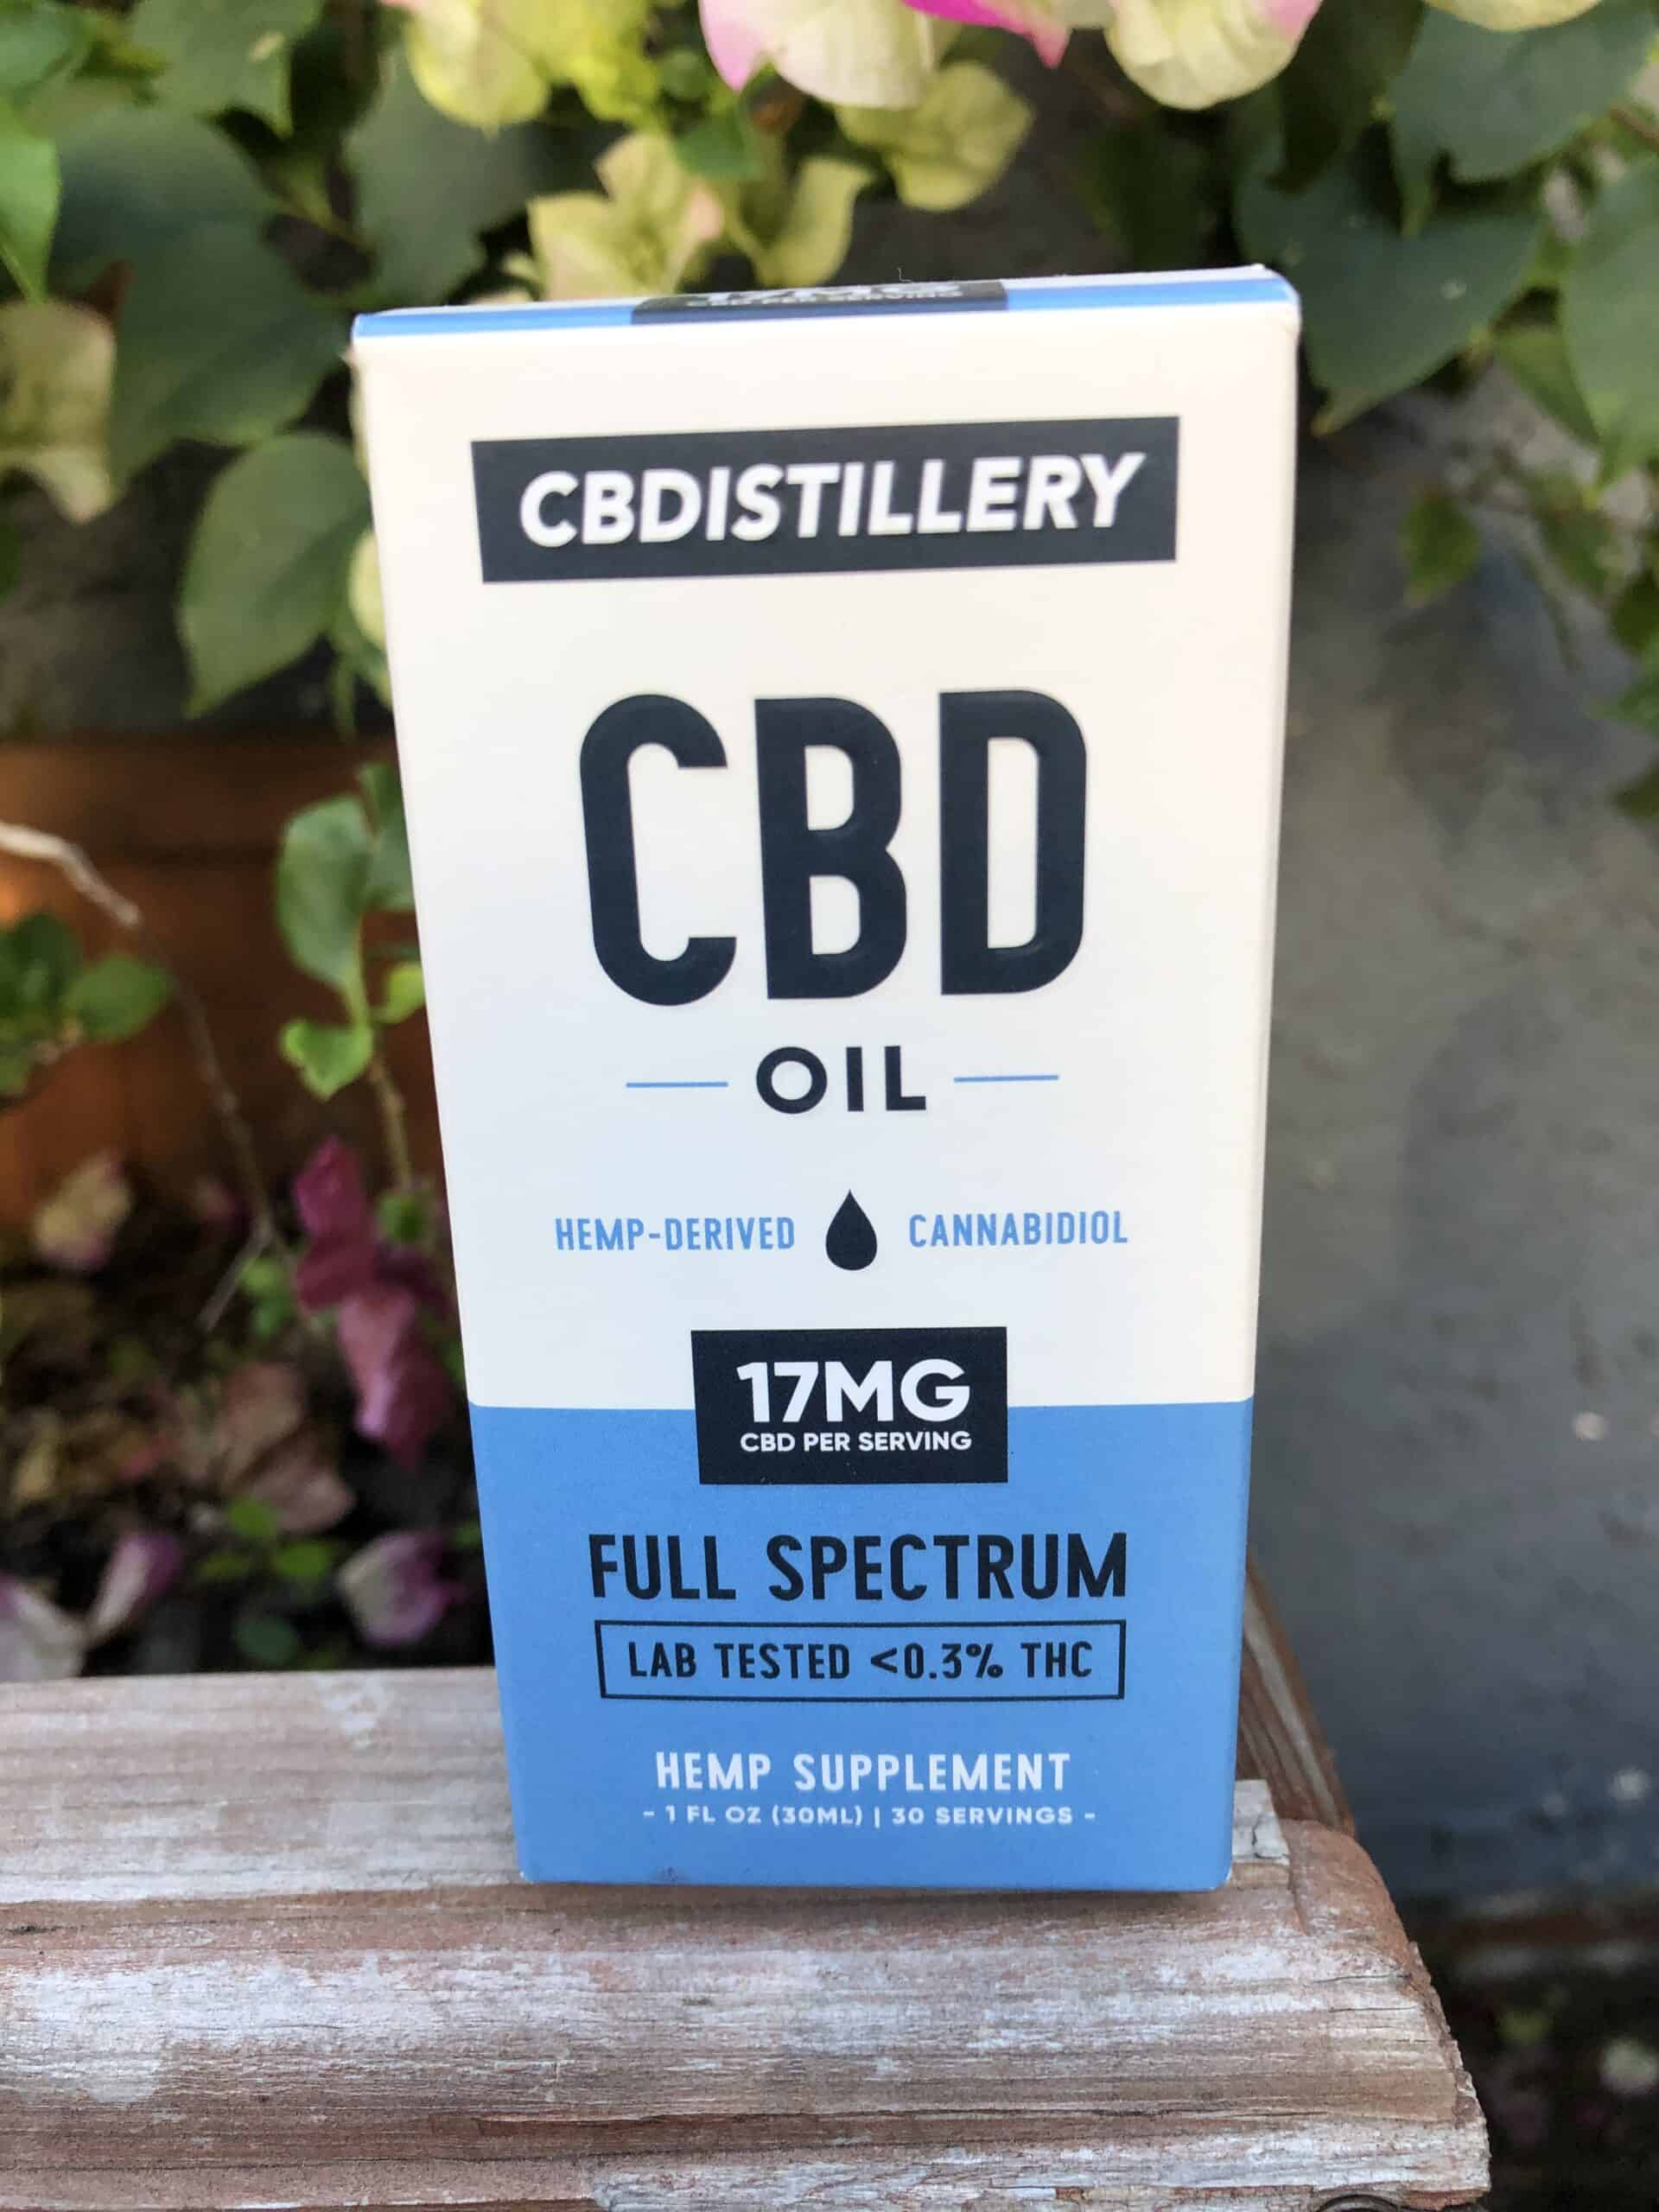 CBDISTILLERY FULL SPECTRUM CBD OIL - 500 MG